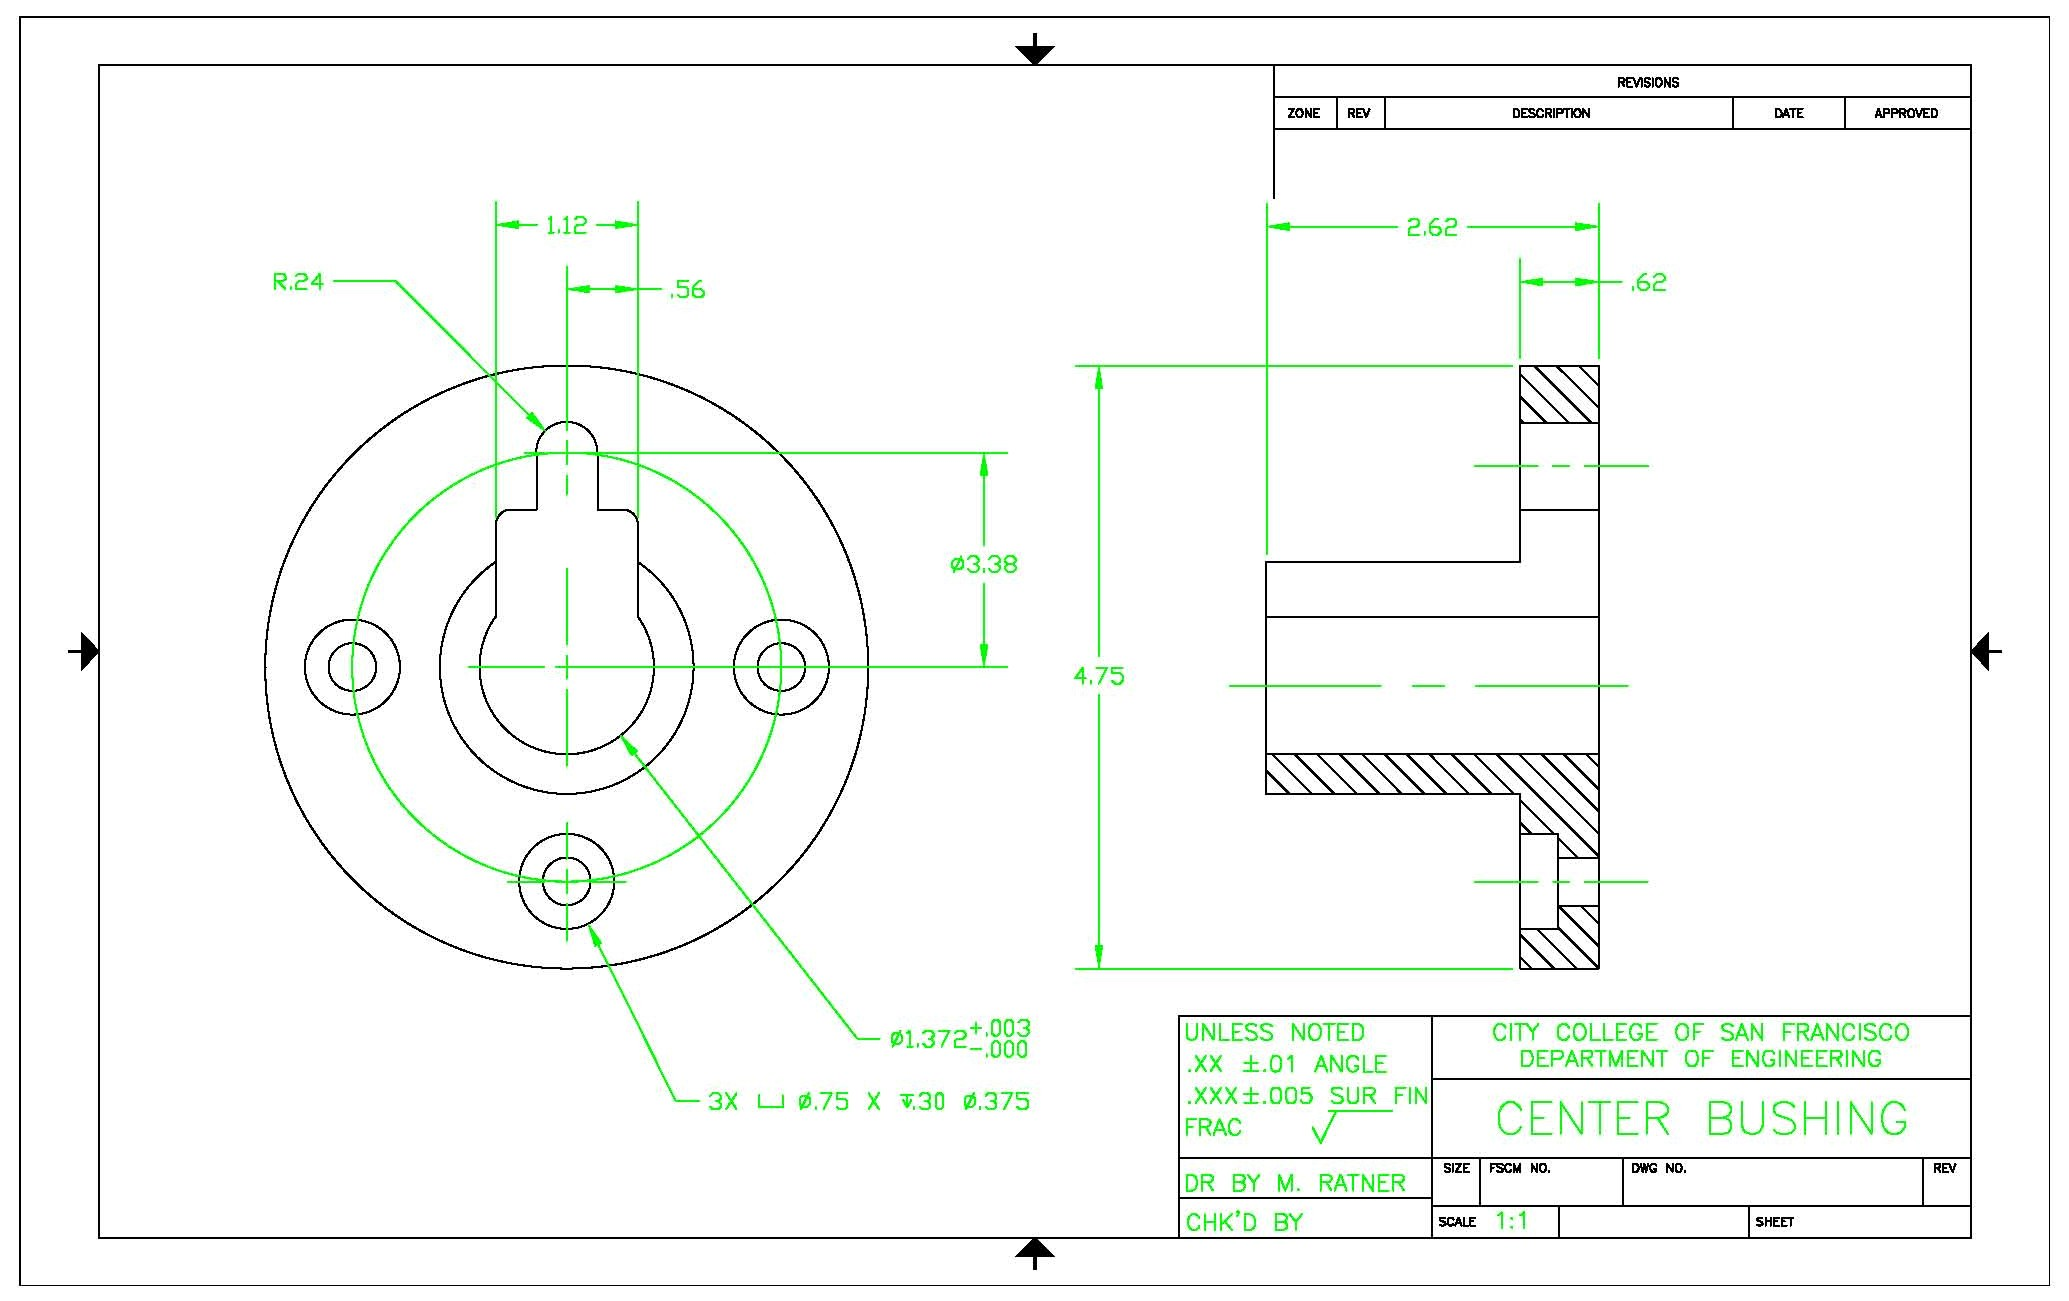 will do AutoCAD assignments for you for $5